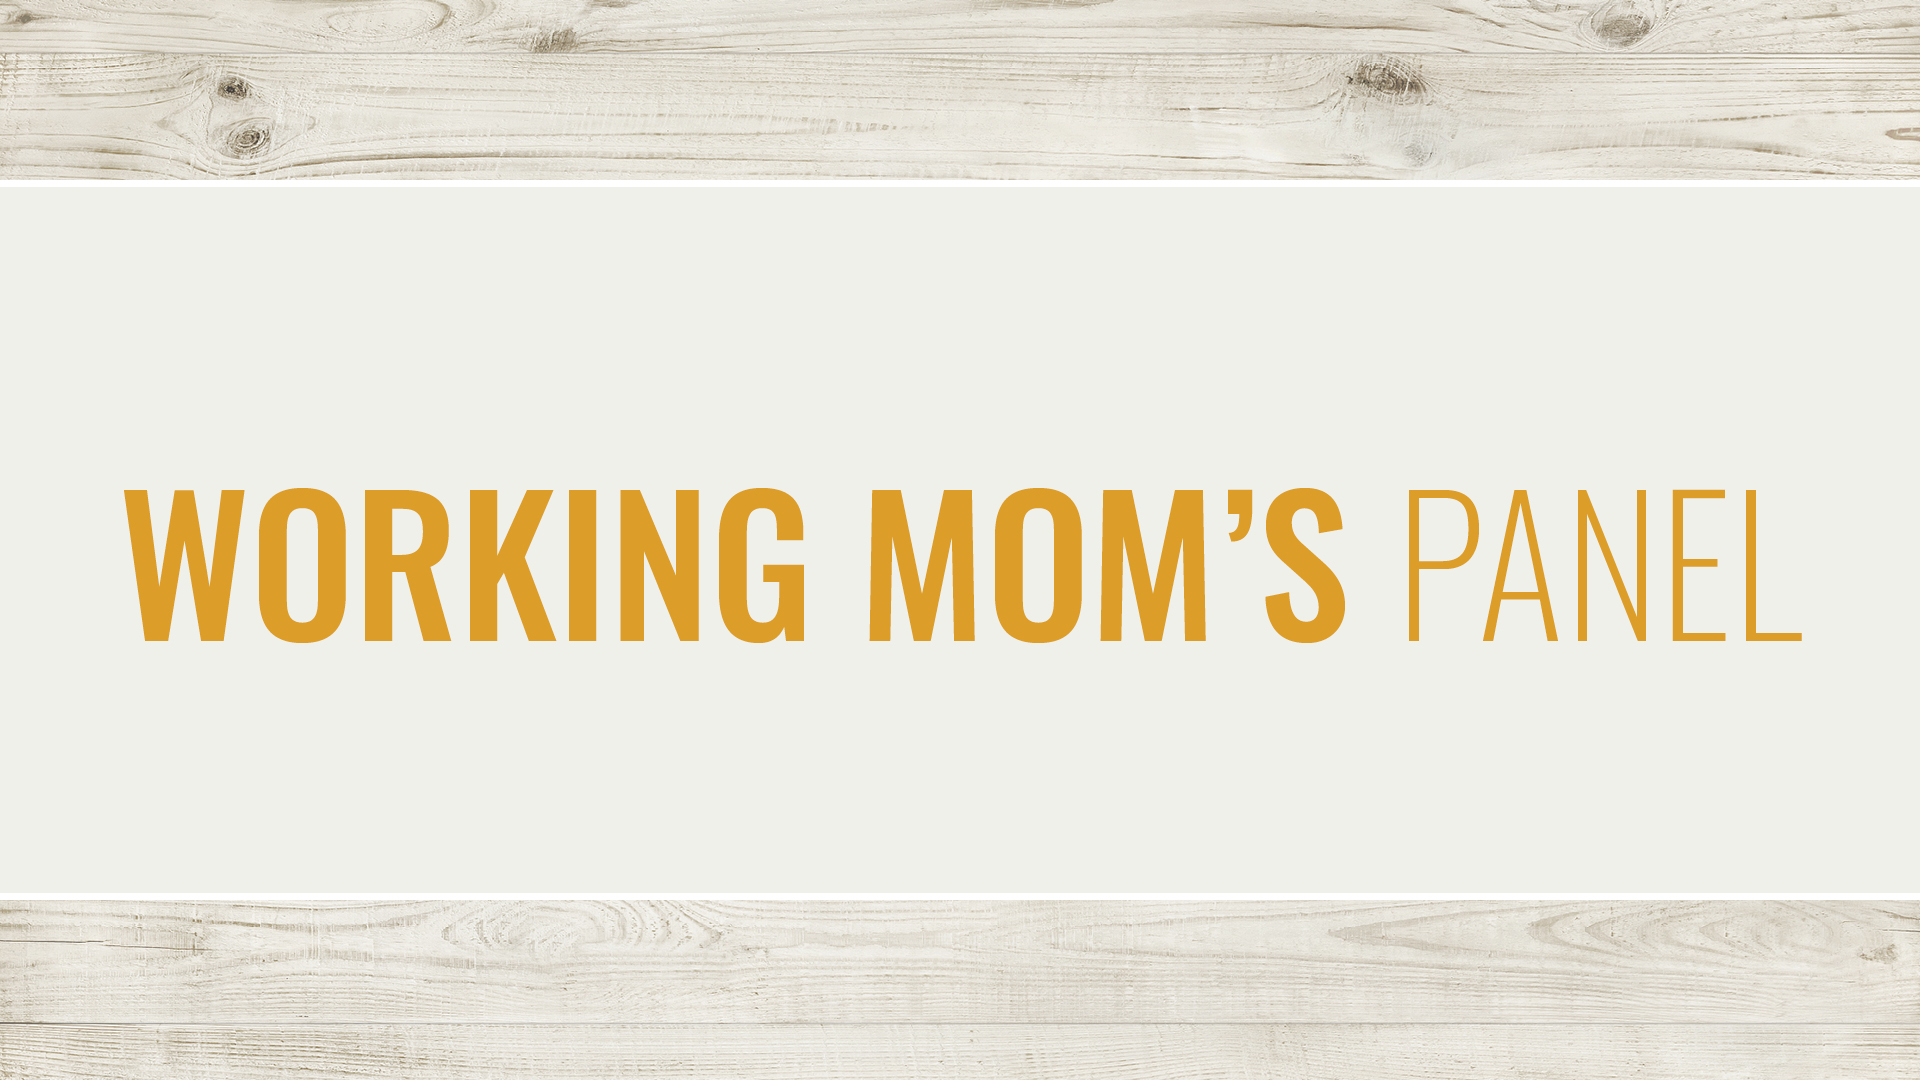 Working Mom's Panel: Week 2